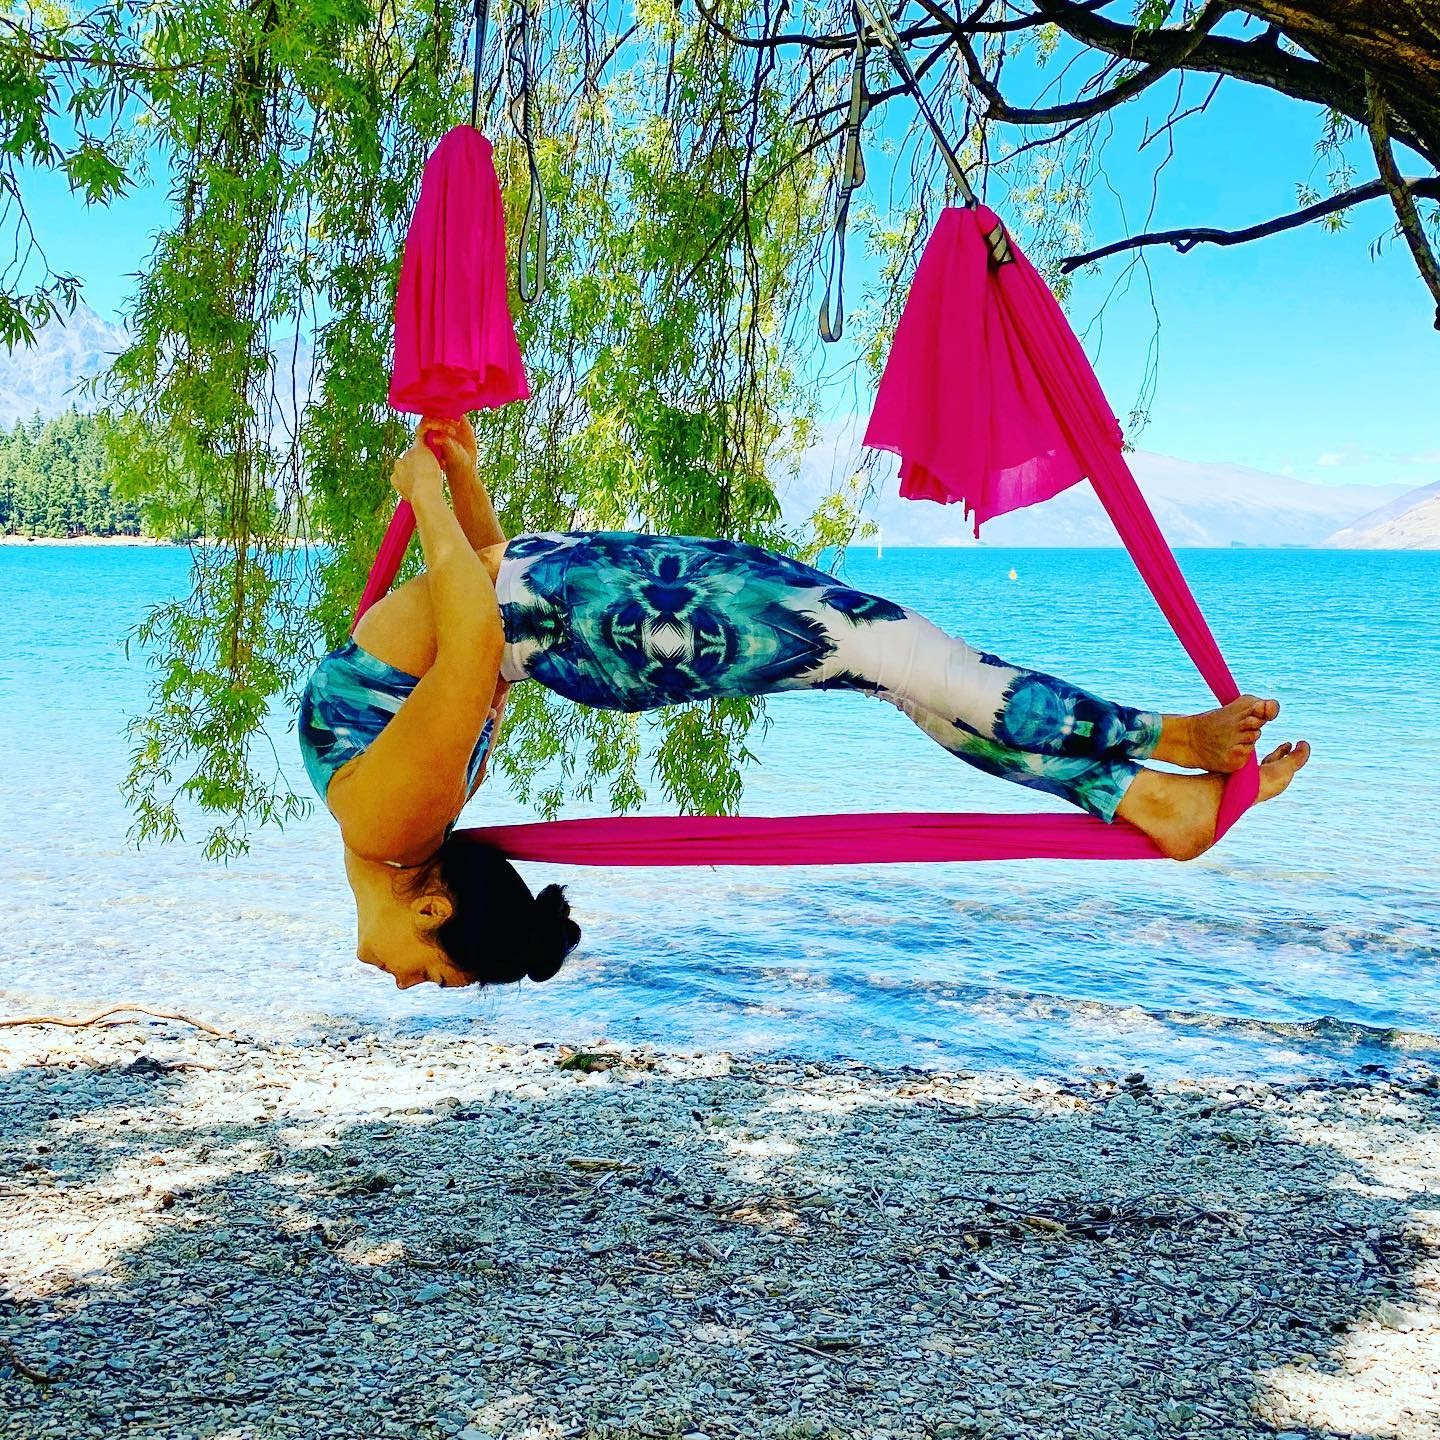 CamiYoga classes are based on the theme of Aerial Yoga